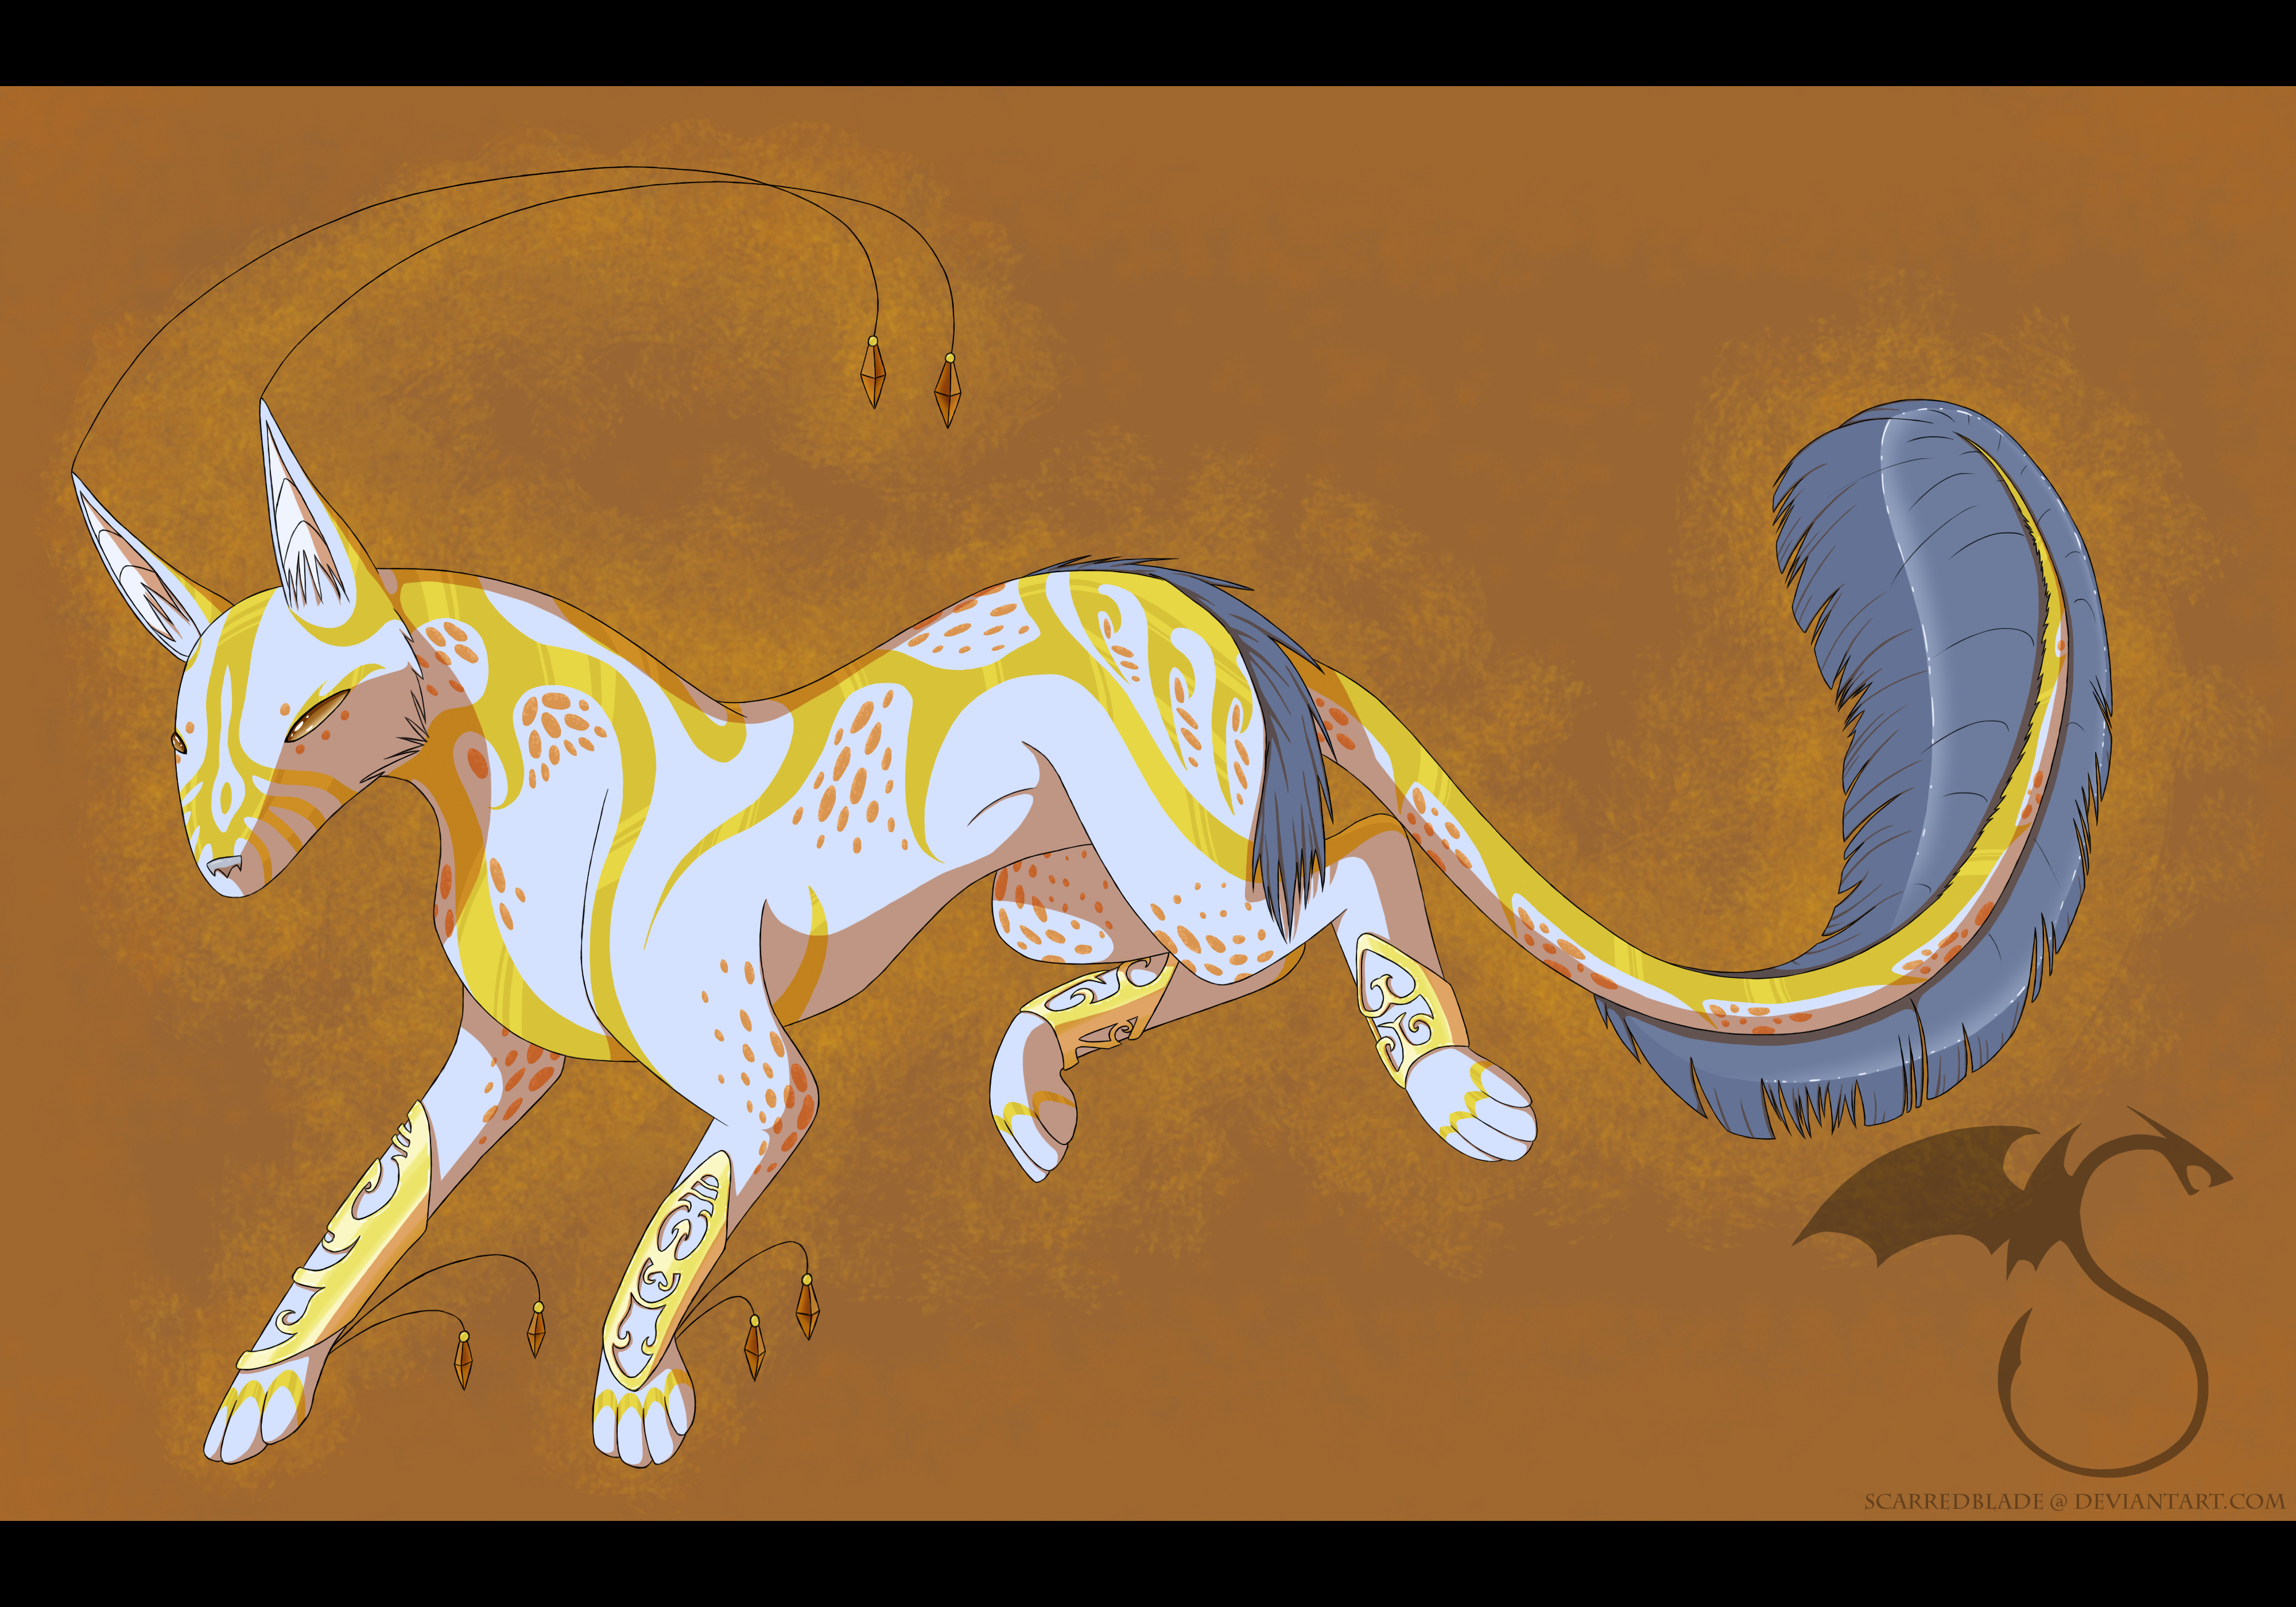 Gilded Vyxeph by Scarredblade